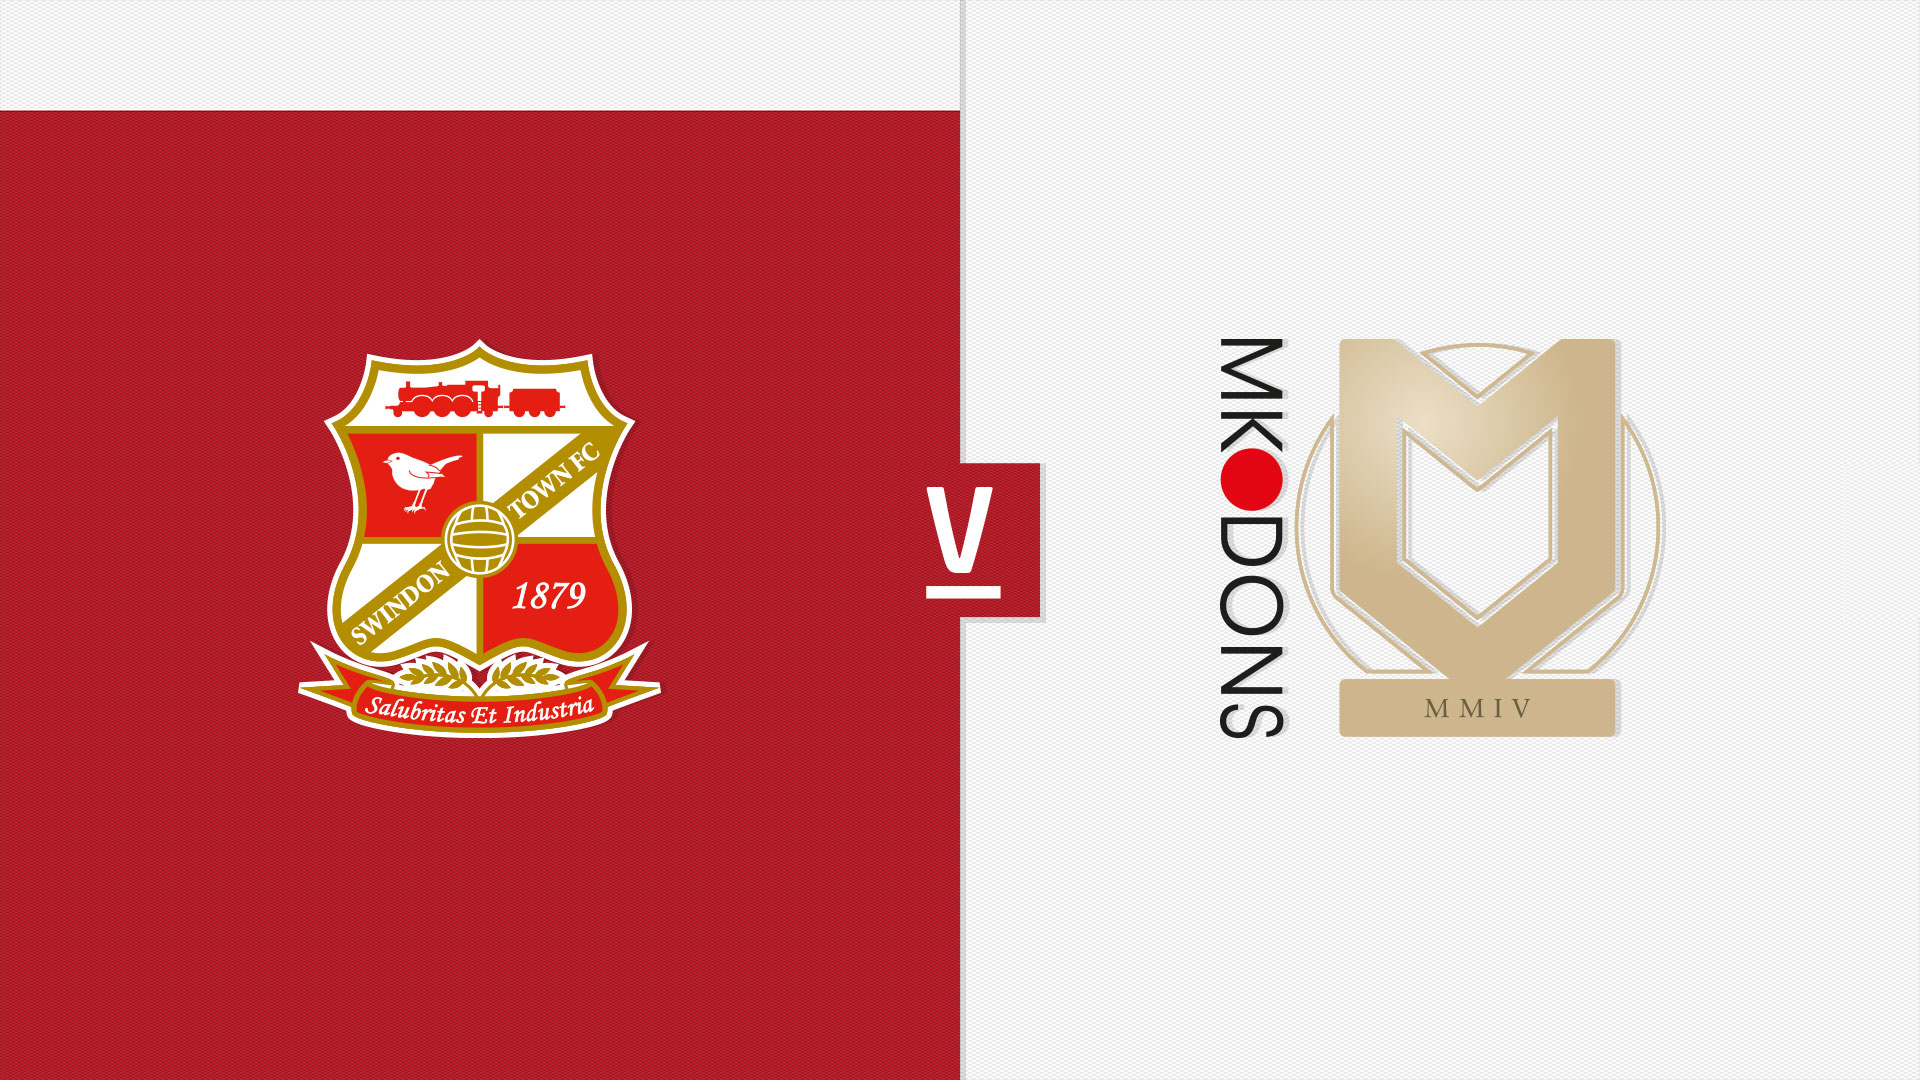 Mk dons v swindon betting trends hedging sports bets calculator